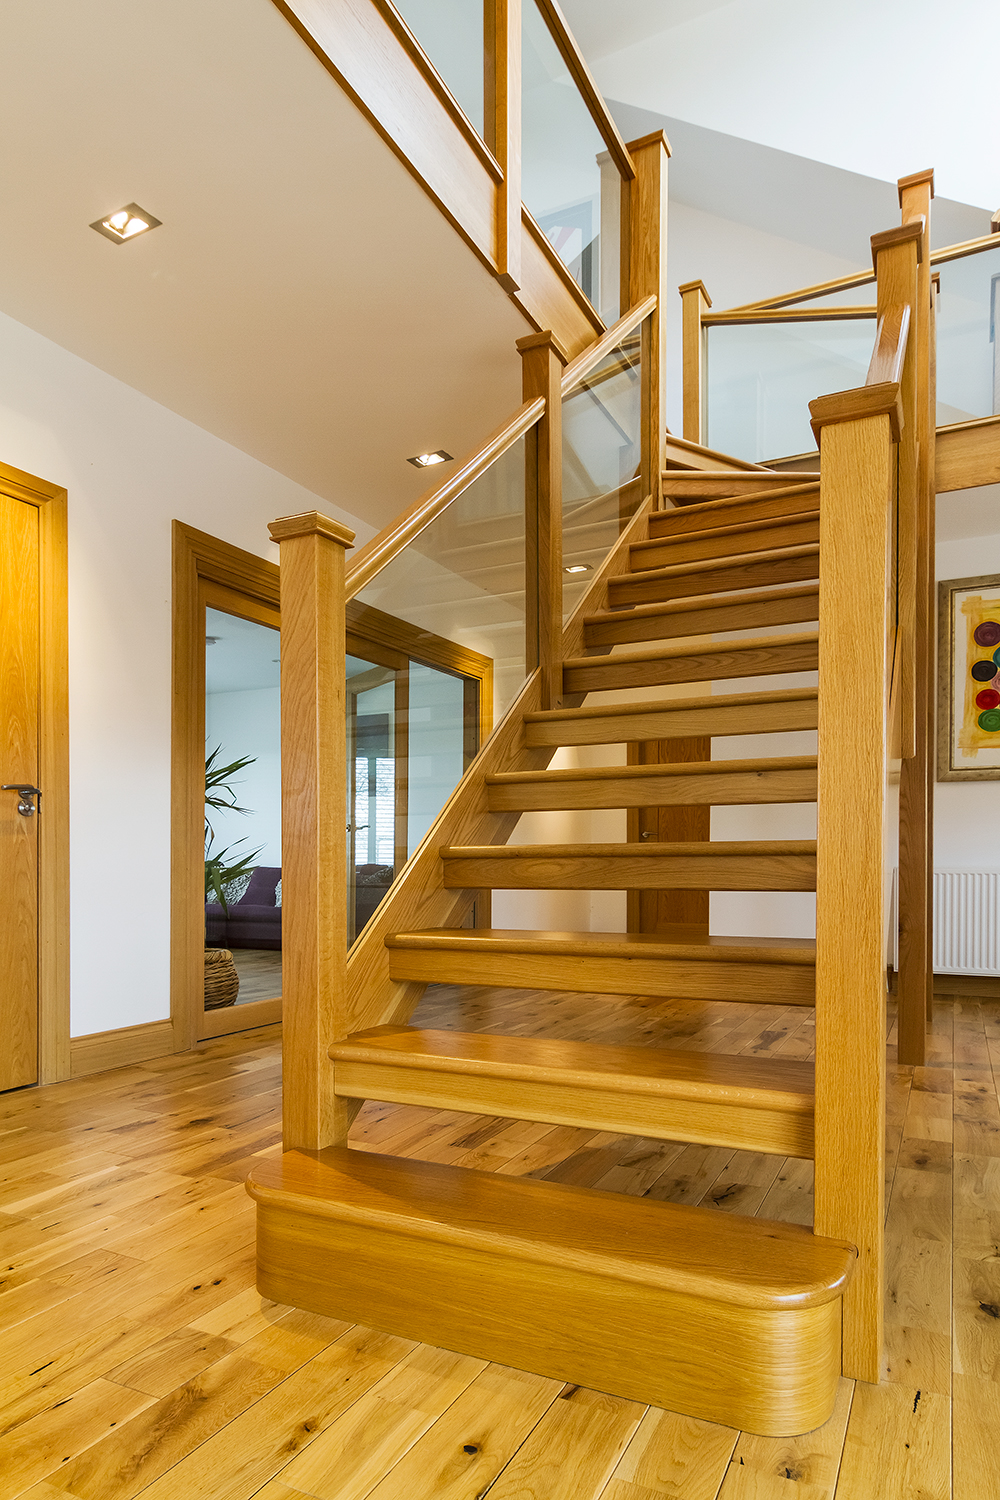 www.stockwell-ltd.co.uk   3 kite top winder open rise   stair in American white oak with a double bull  nose tread,   glass panel picture-  frame bal  ustrade   and pyramid   newel caps  .